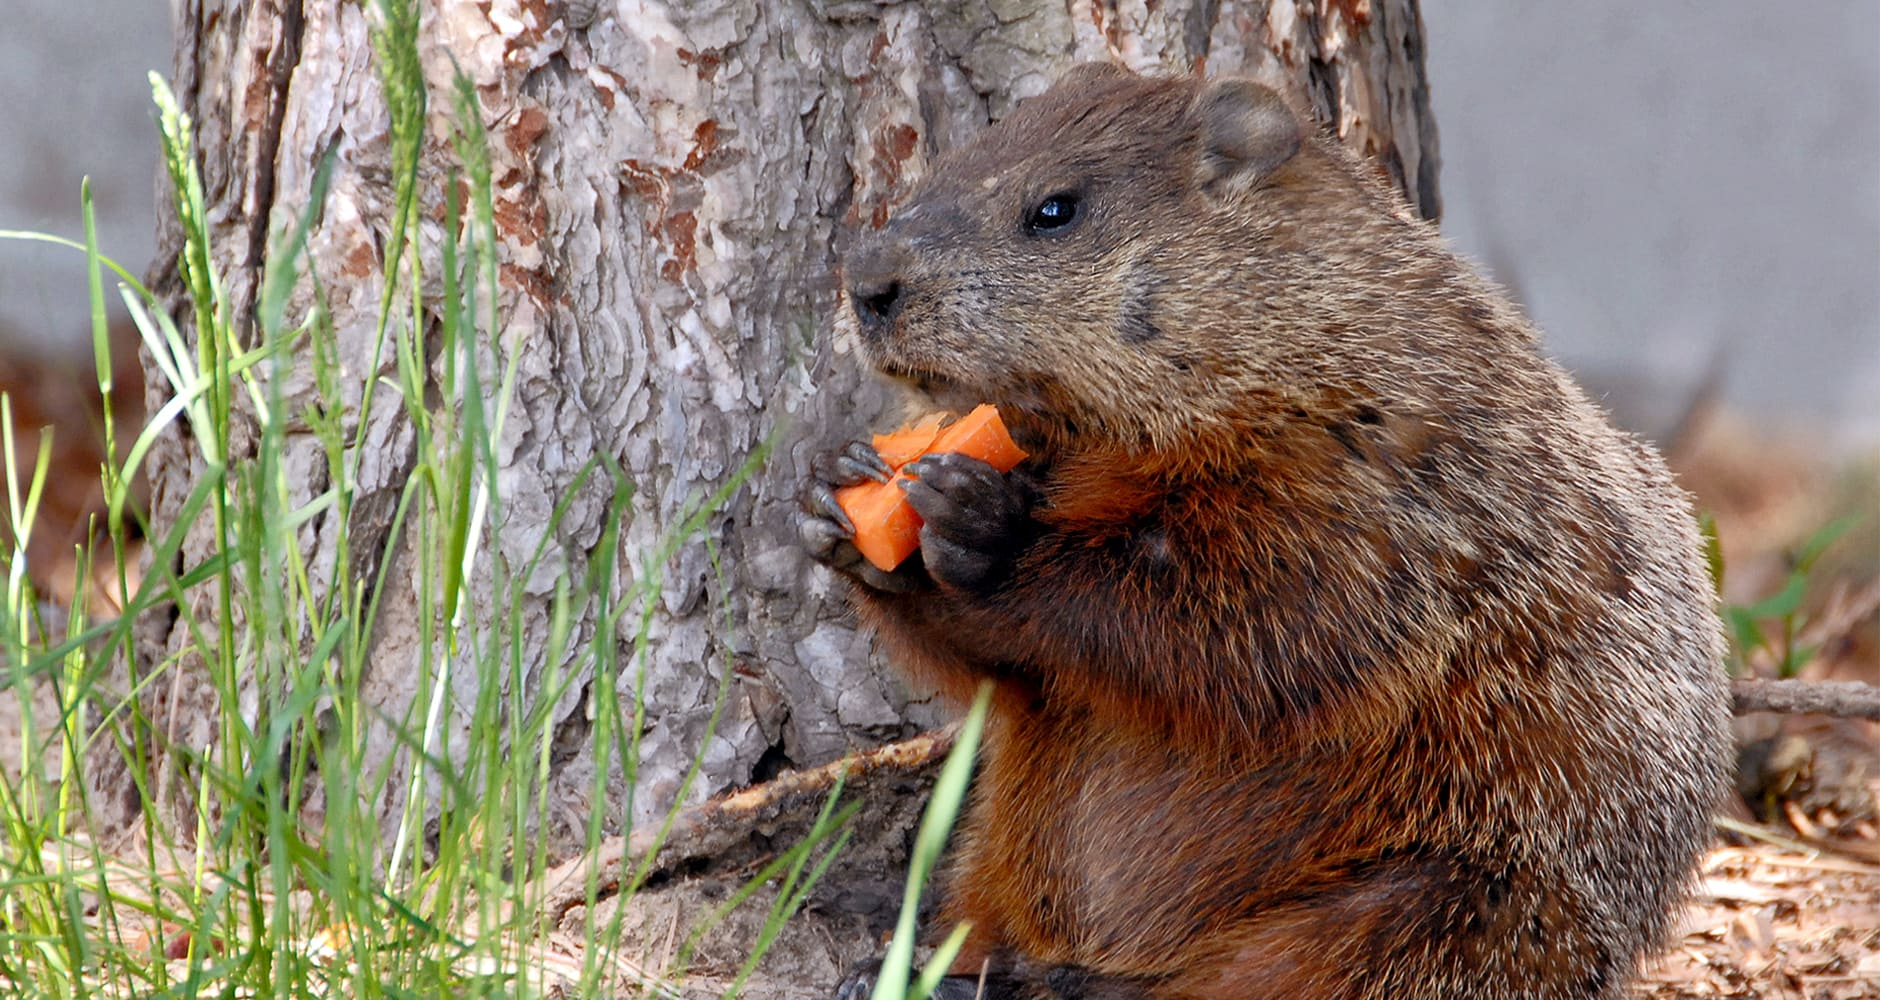 5 Natural Ways To Get Rid of Groundhogs (Without Harming Them)image preview